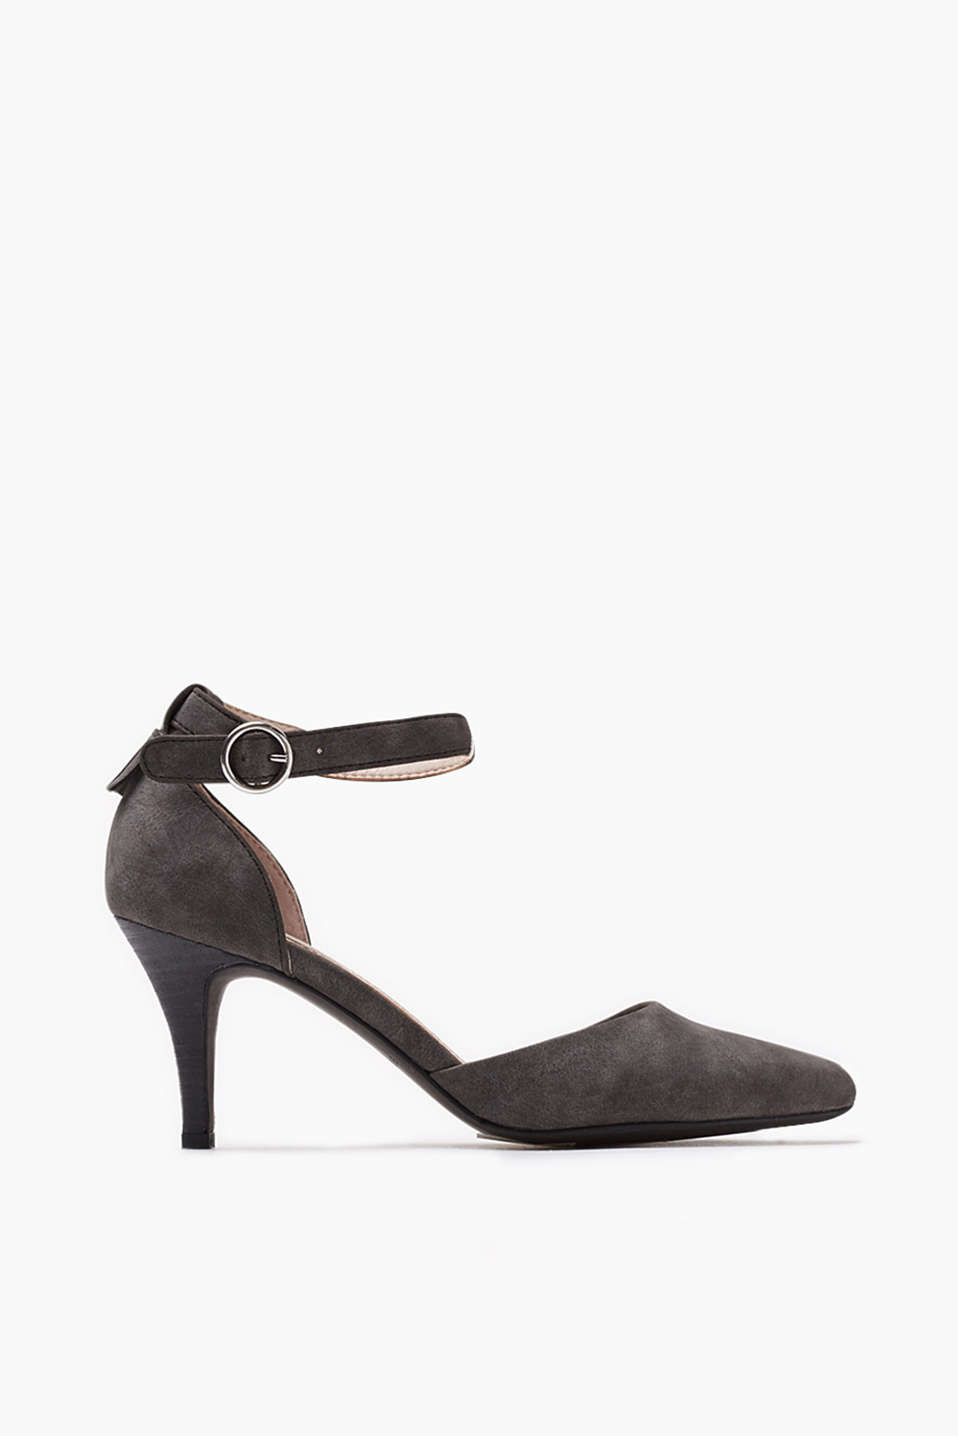 Court shoes with wide ankle straps in imitation nubuck (heel: 7.5 cm)